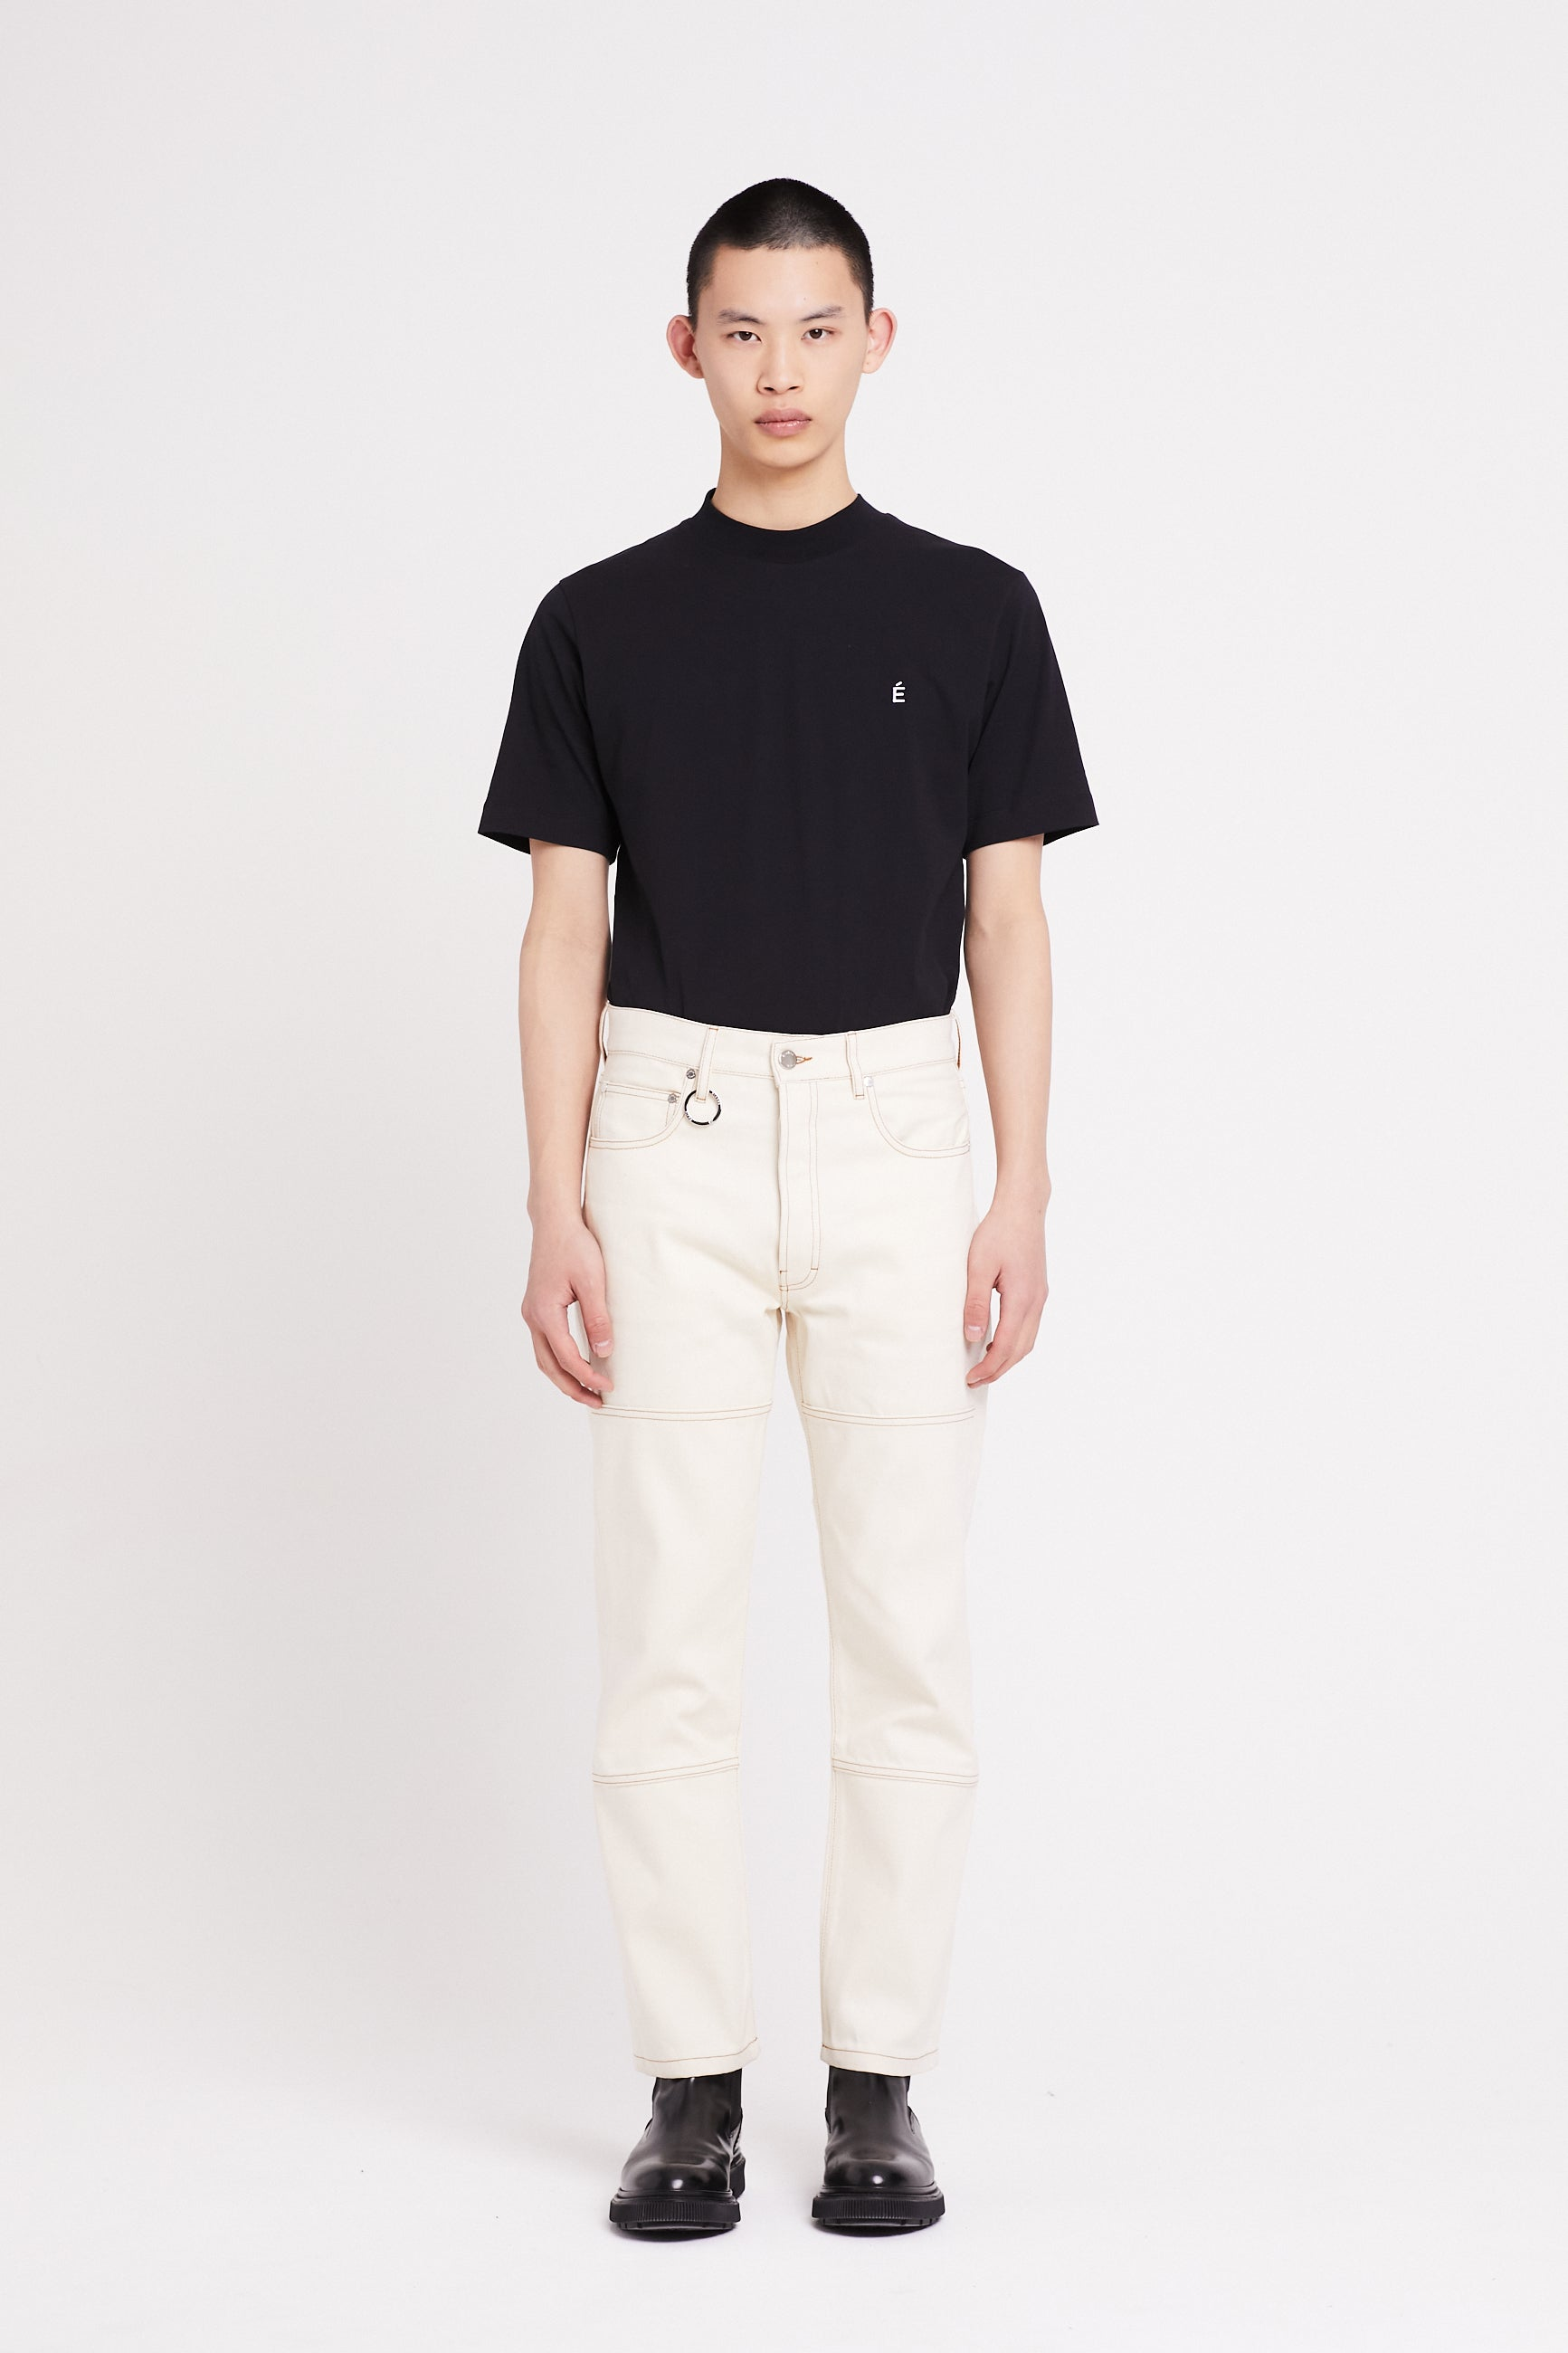 Études Corner Off White Trousers 1